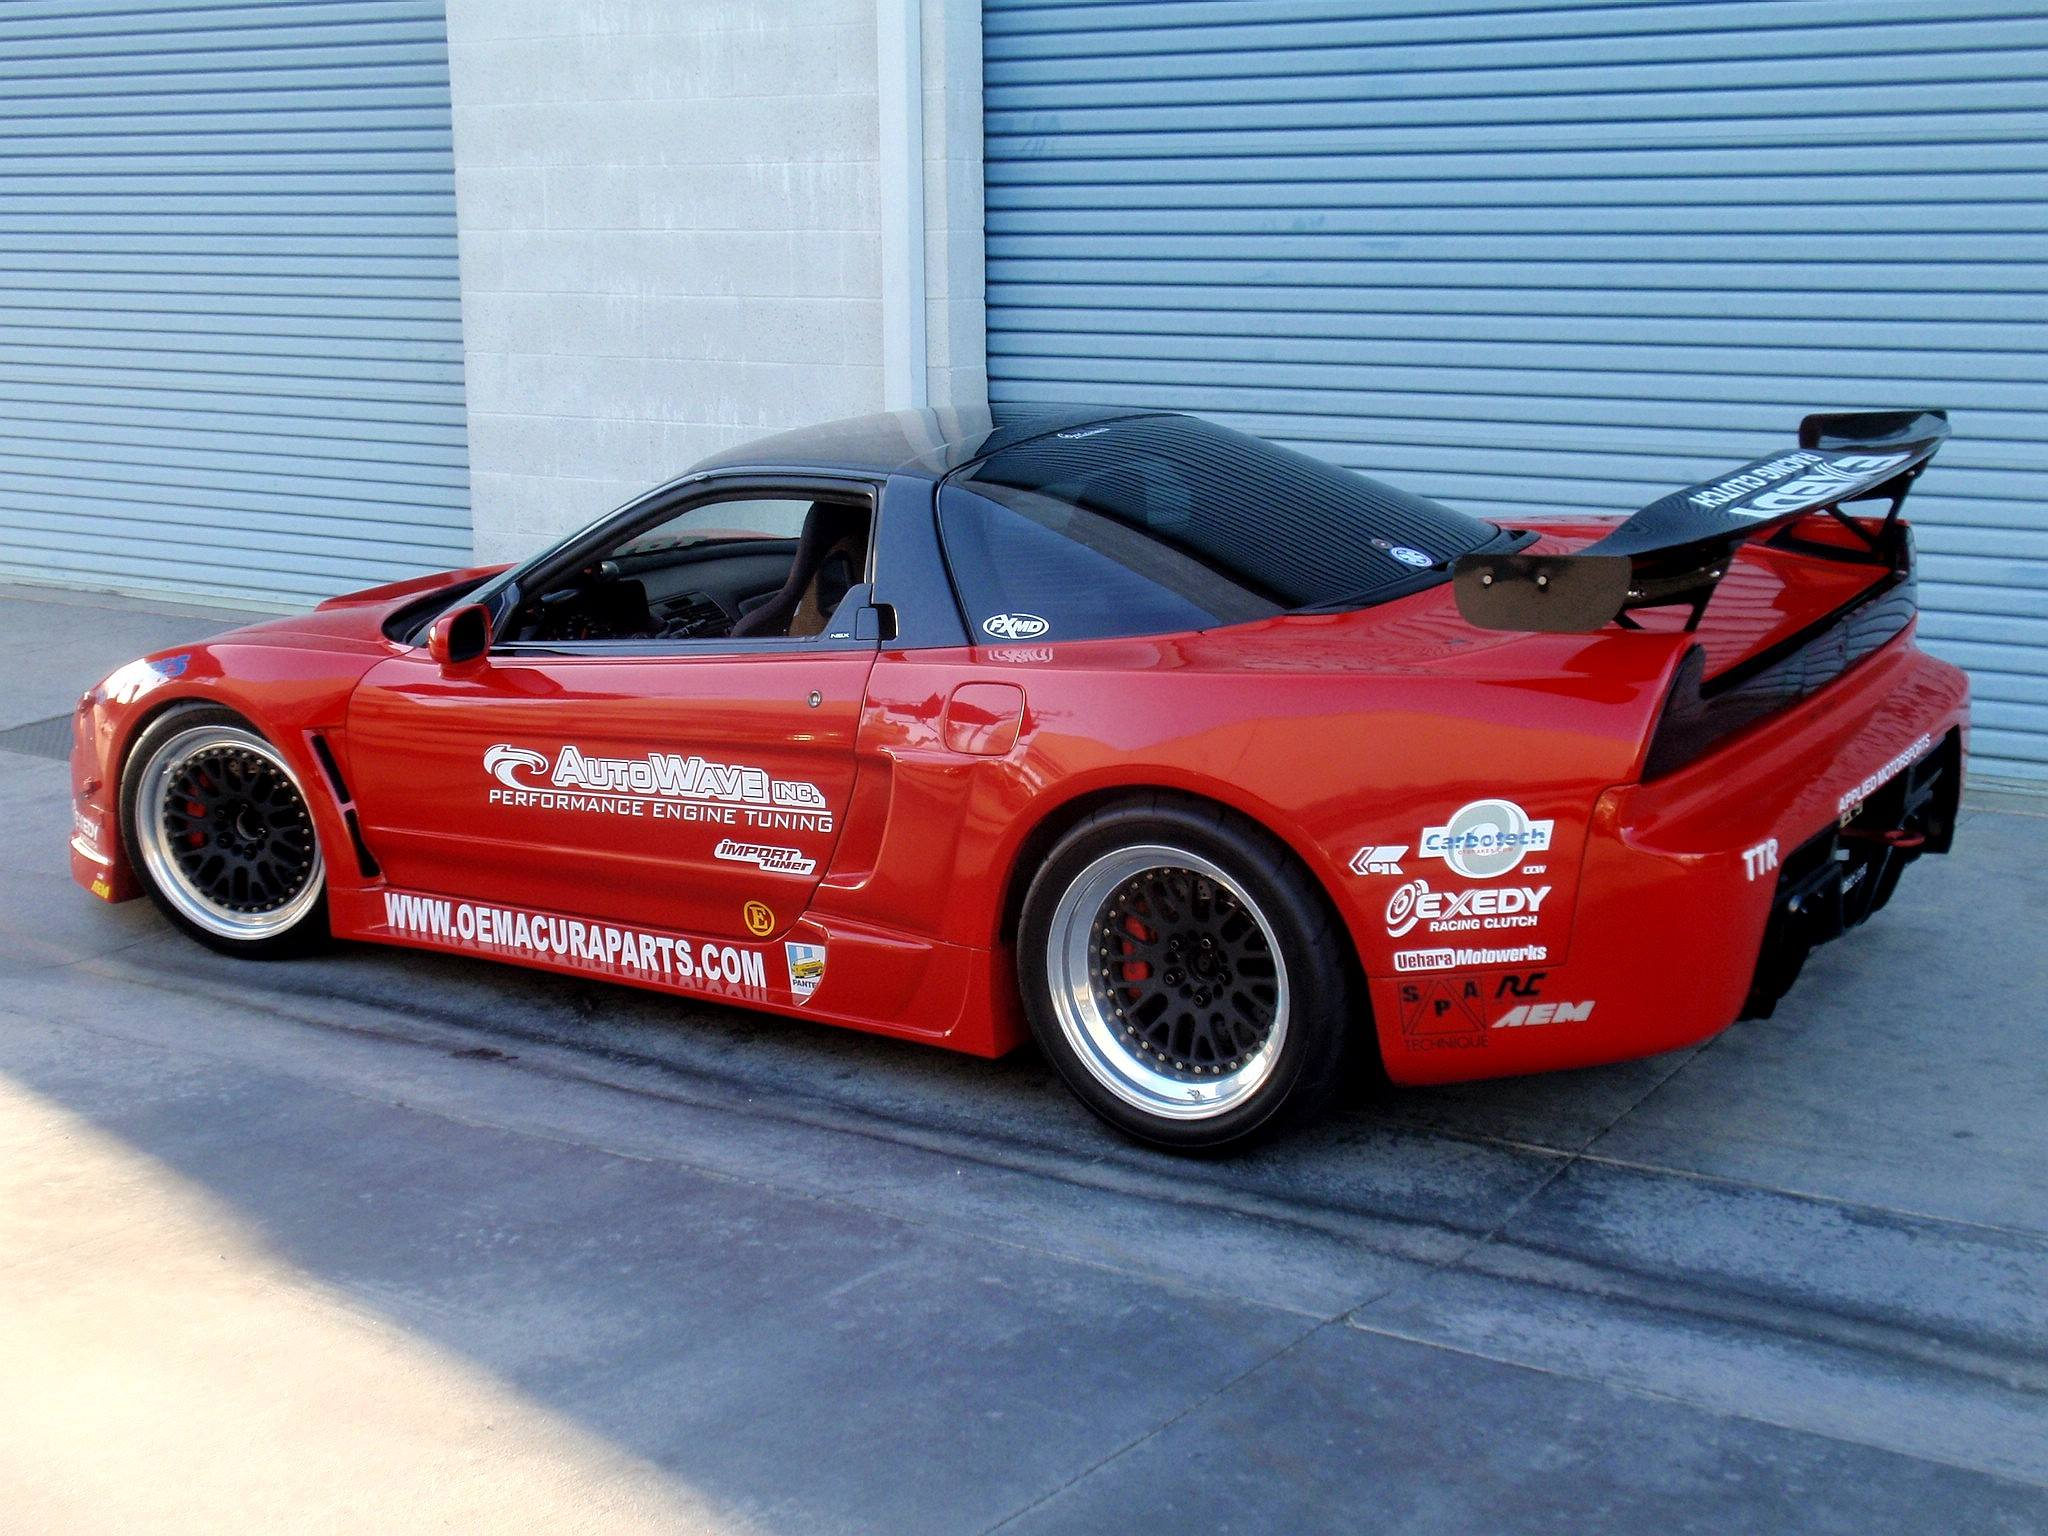 Acura Nsx With A J32a V6 Engine Swap Depot Honda Wiring Harness You Can Even Buy David Dowlings Kit If Wish To Install J Series In Your